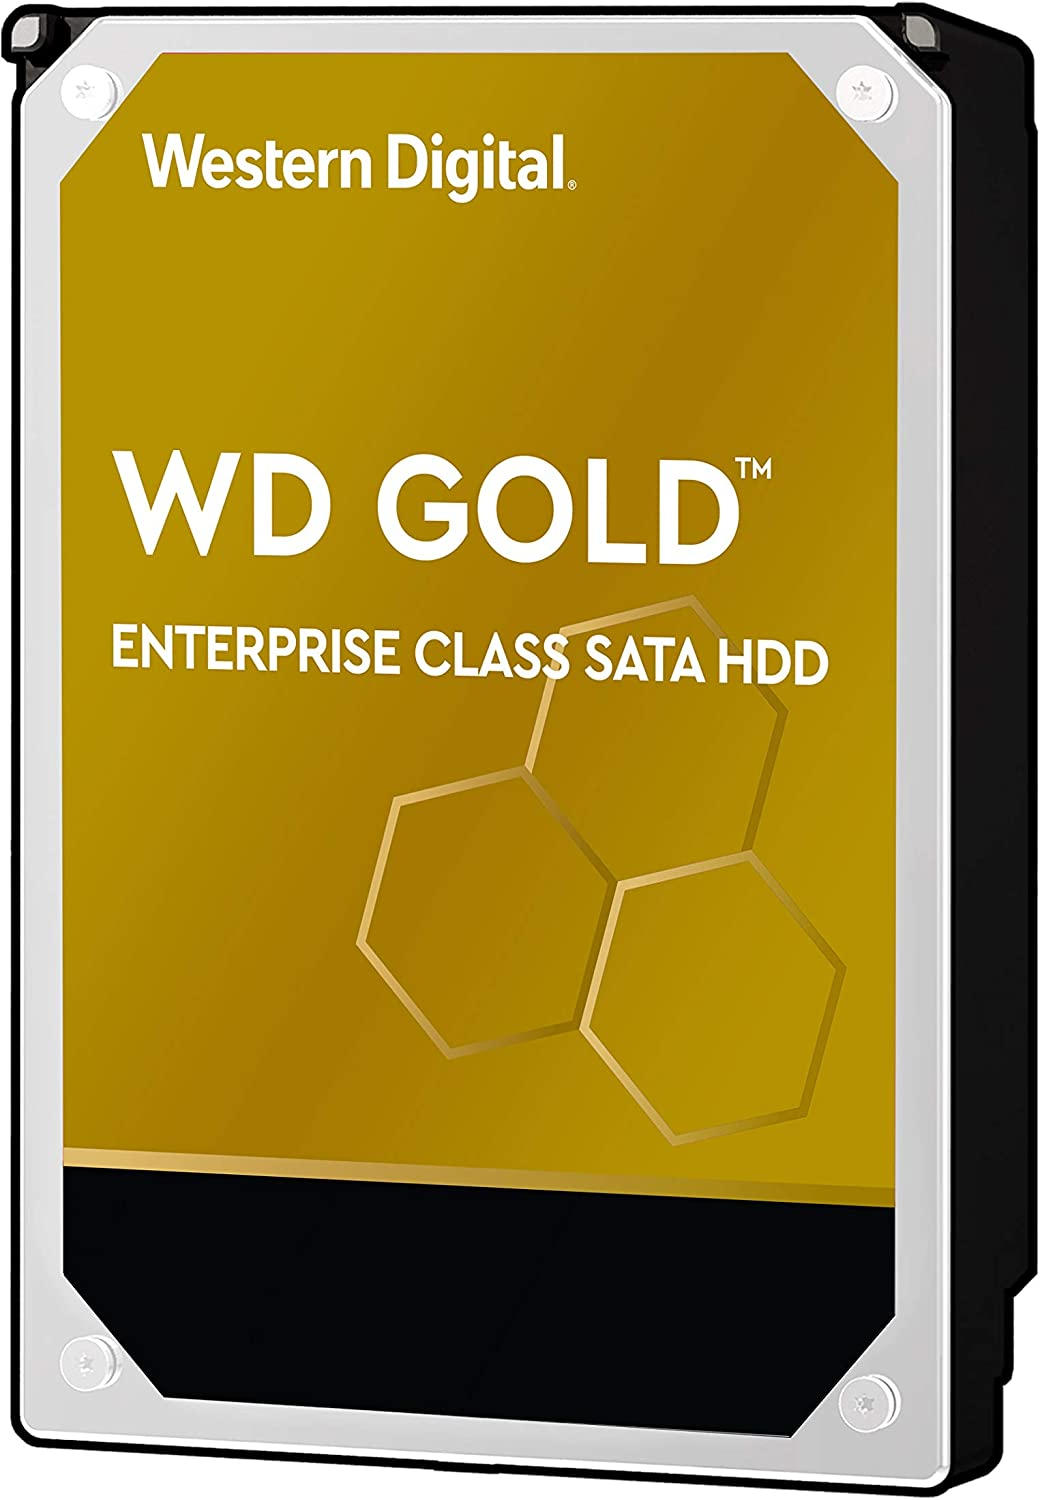 "Western Digital 4TB WD Gold Enterprise Class Internal Hard Drive - 7200 RPM Class, SATA 6 Gb/s, 256 MB Cache, 3.5"" - WD4003FRYZ"